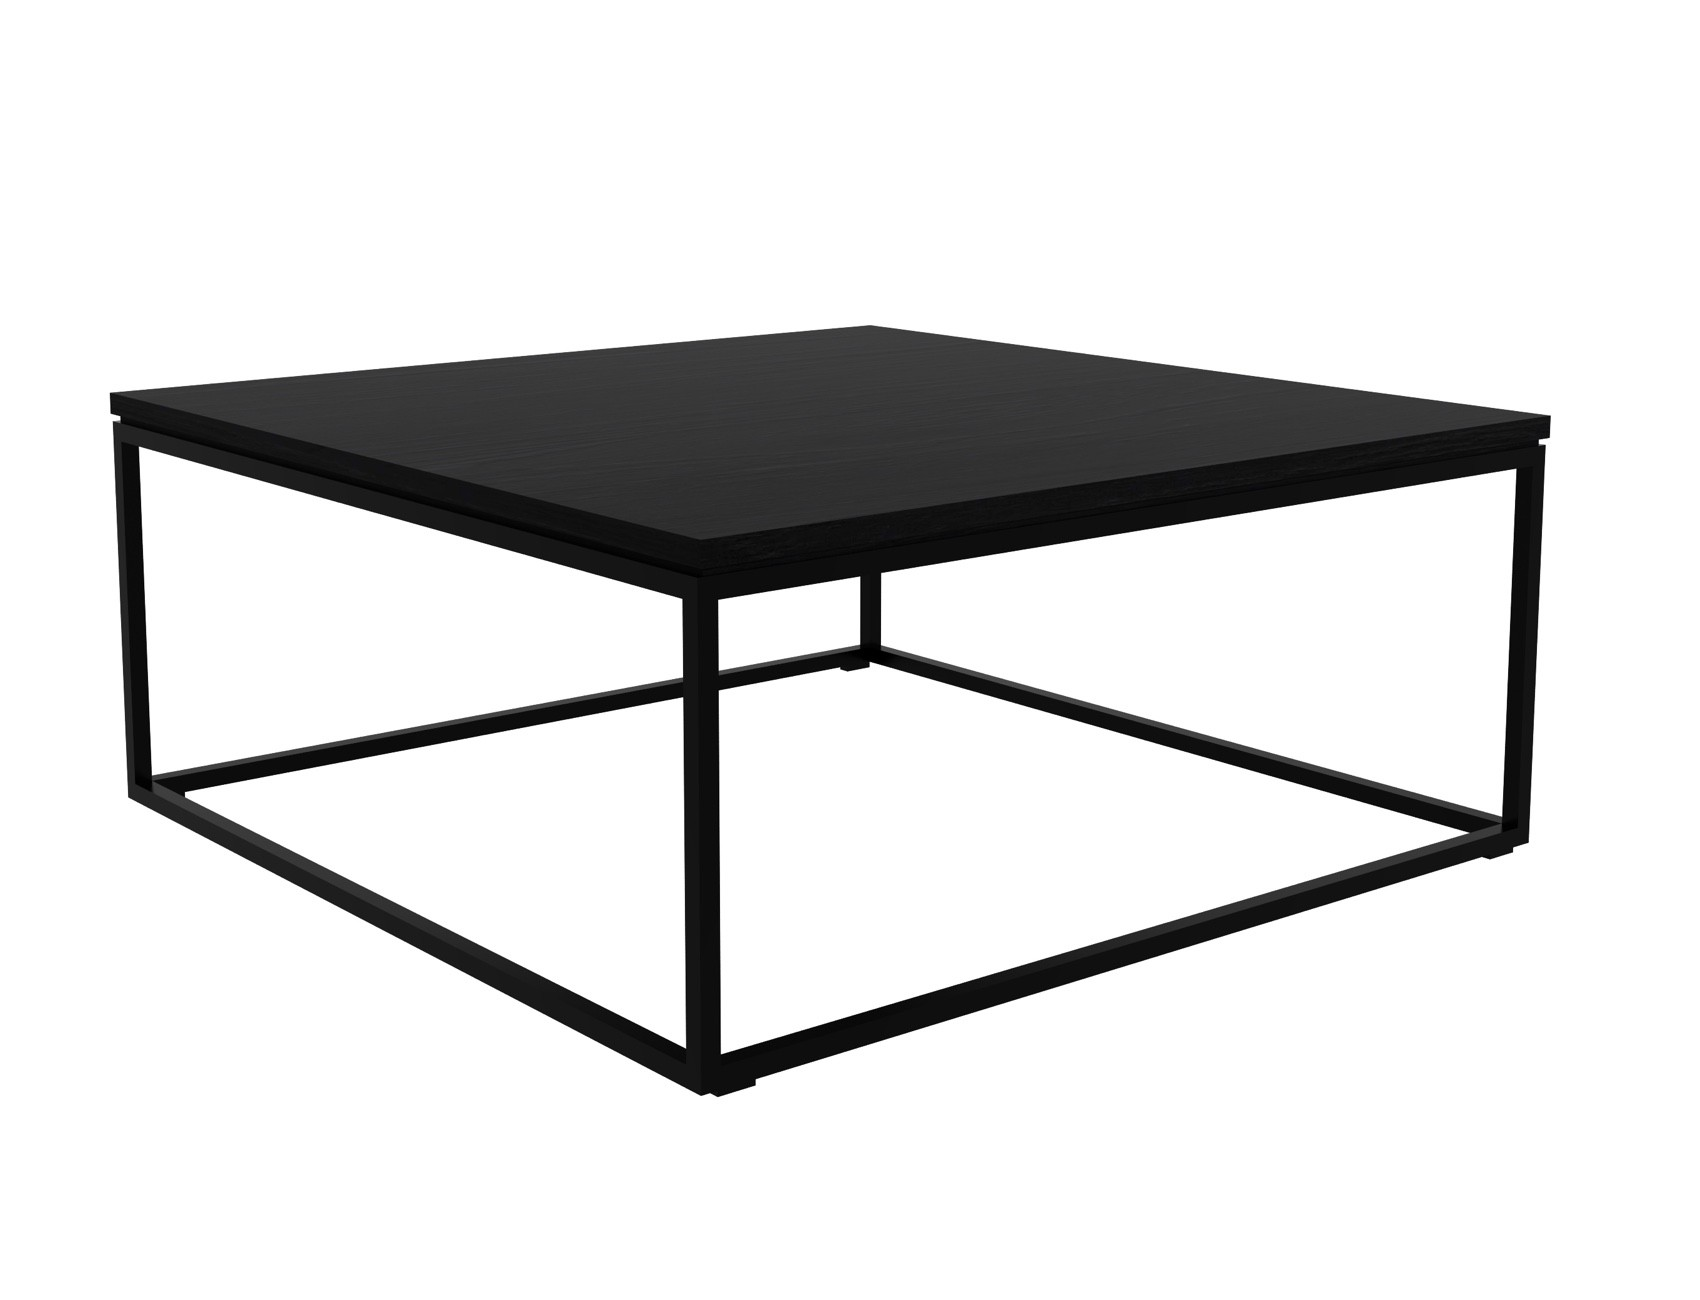 Ethnicraft Thin Coffee Table Black